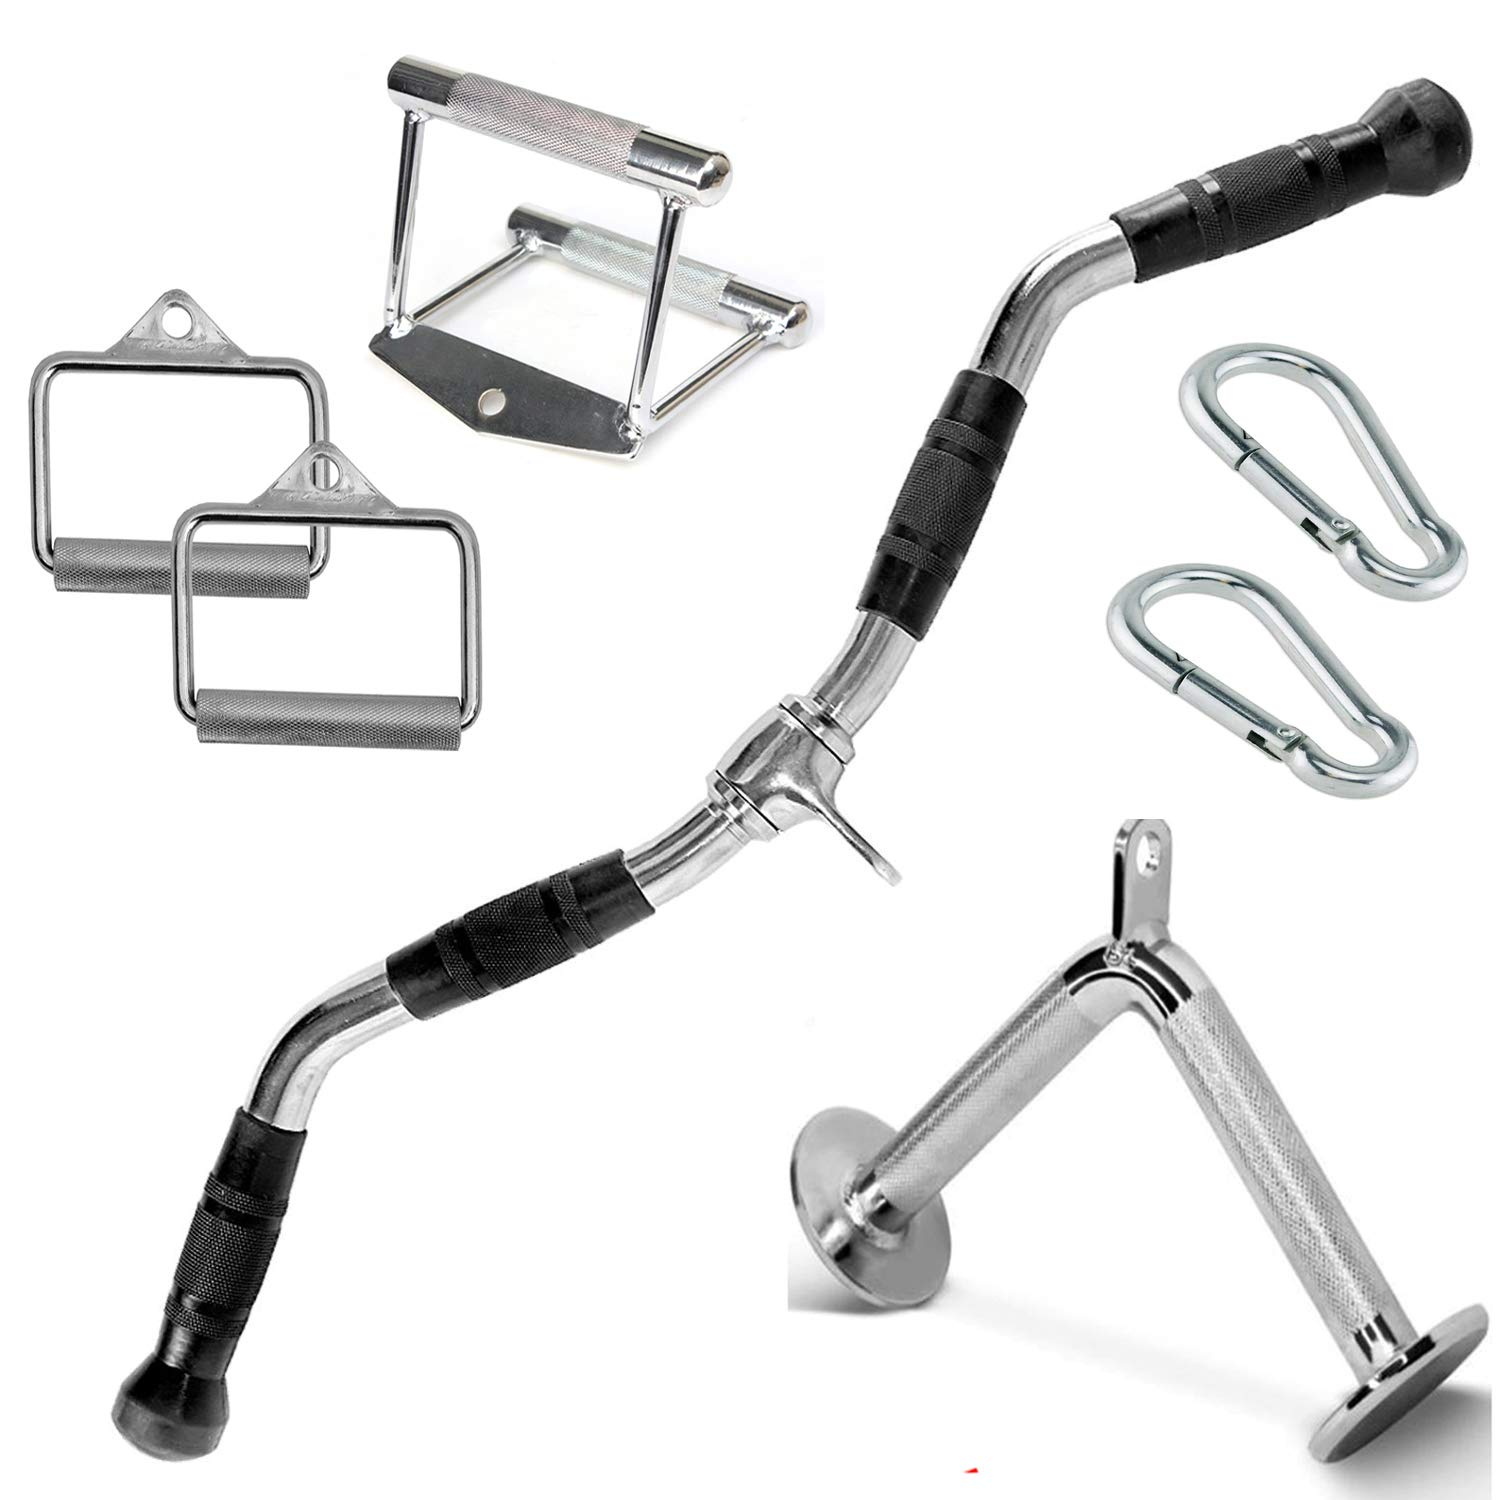 FITNESS MANIAC Home Gym Cable Attachment Handle Machine Exercise Chrome PressDown Strength Training Home Gym Attachments 30 inch Curl Bar Set (7 Pieces Set) by FITNESS MANIAC (Image #2)